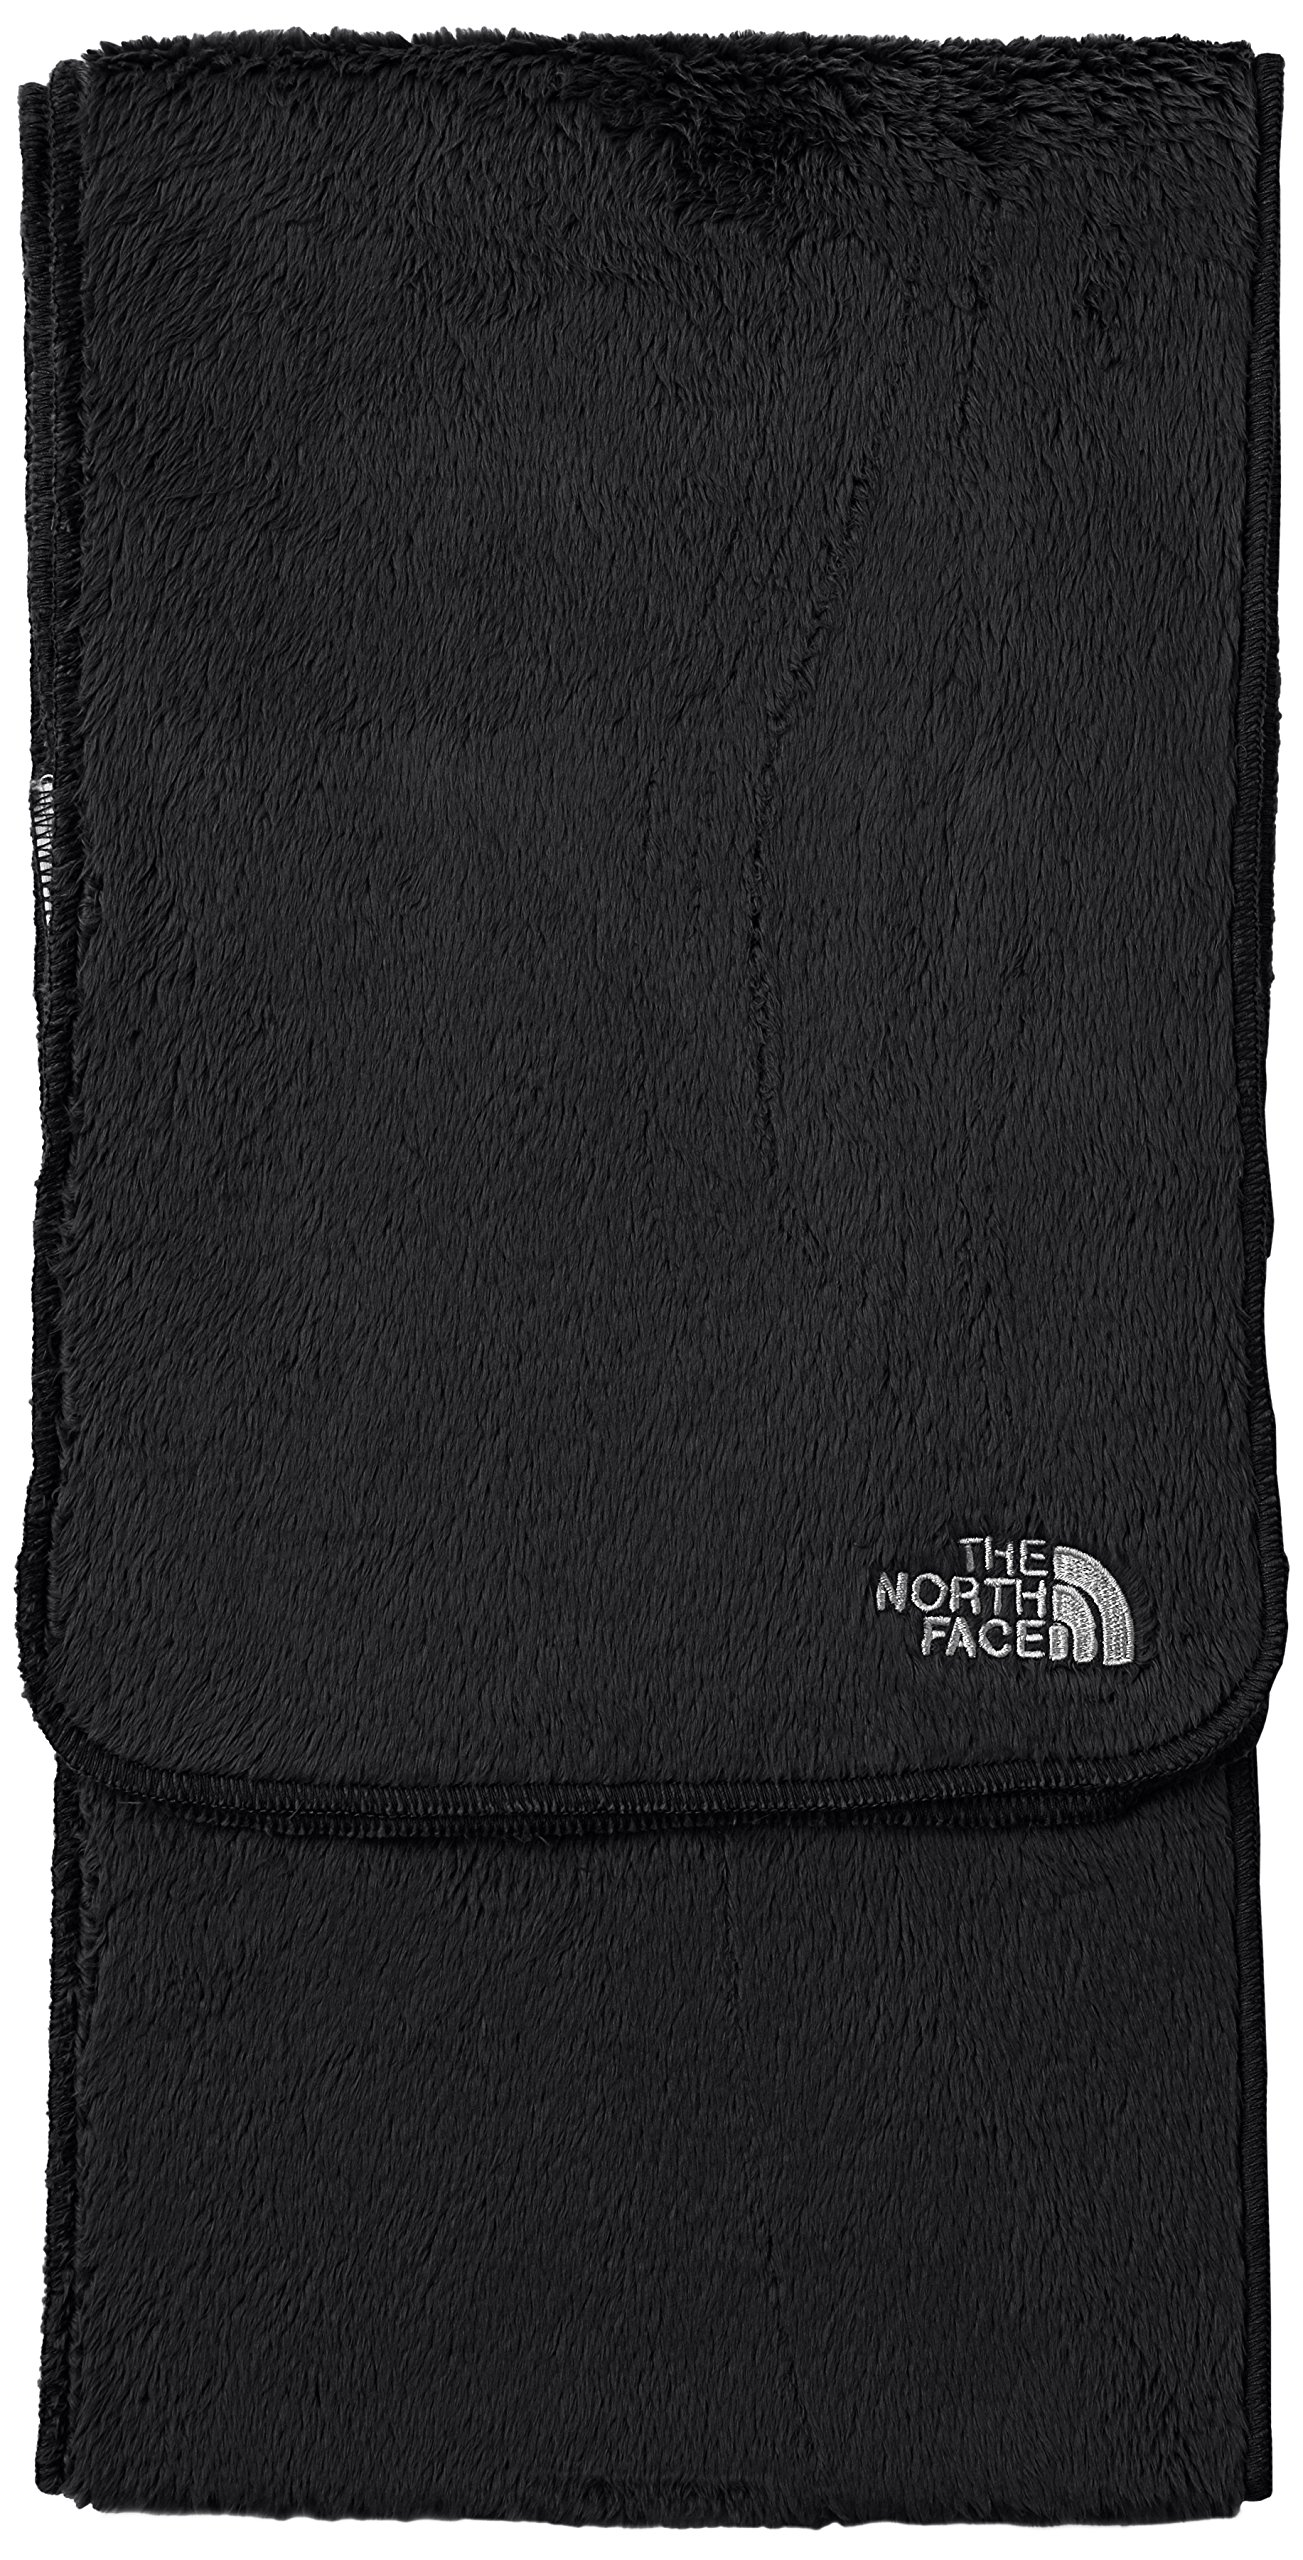 The North Face Denali Thermal Scarf TNF Black One Size by The North Face (Image #2)